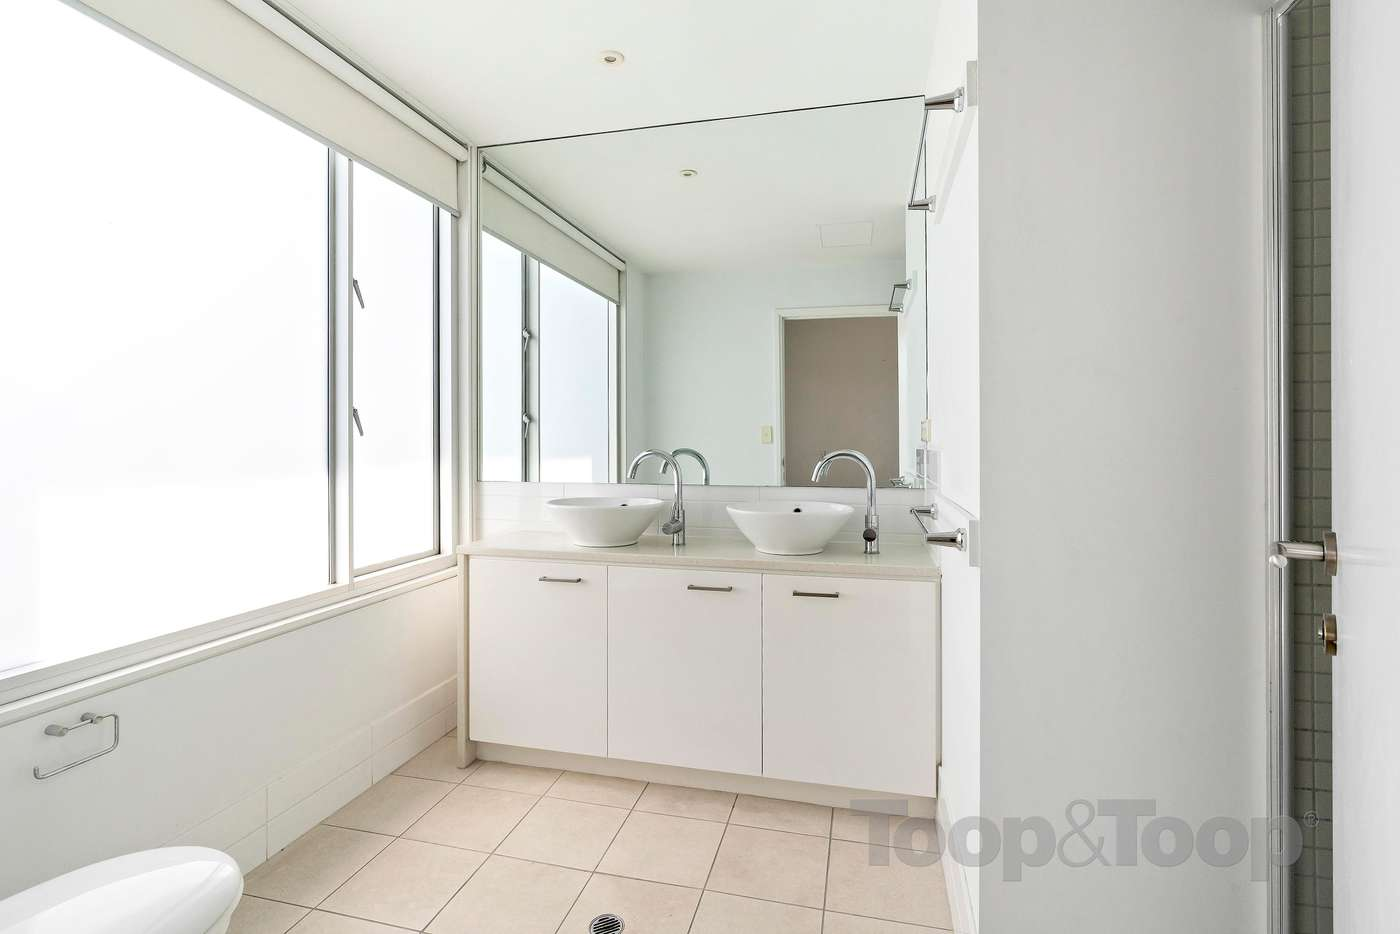 Seventh view of Homely townhouse listing, 6 Kudlyo Close, New Port SA 5015